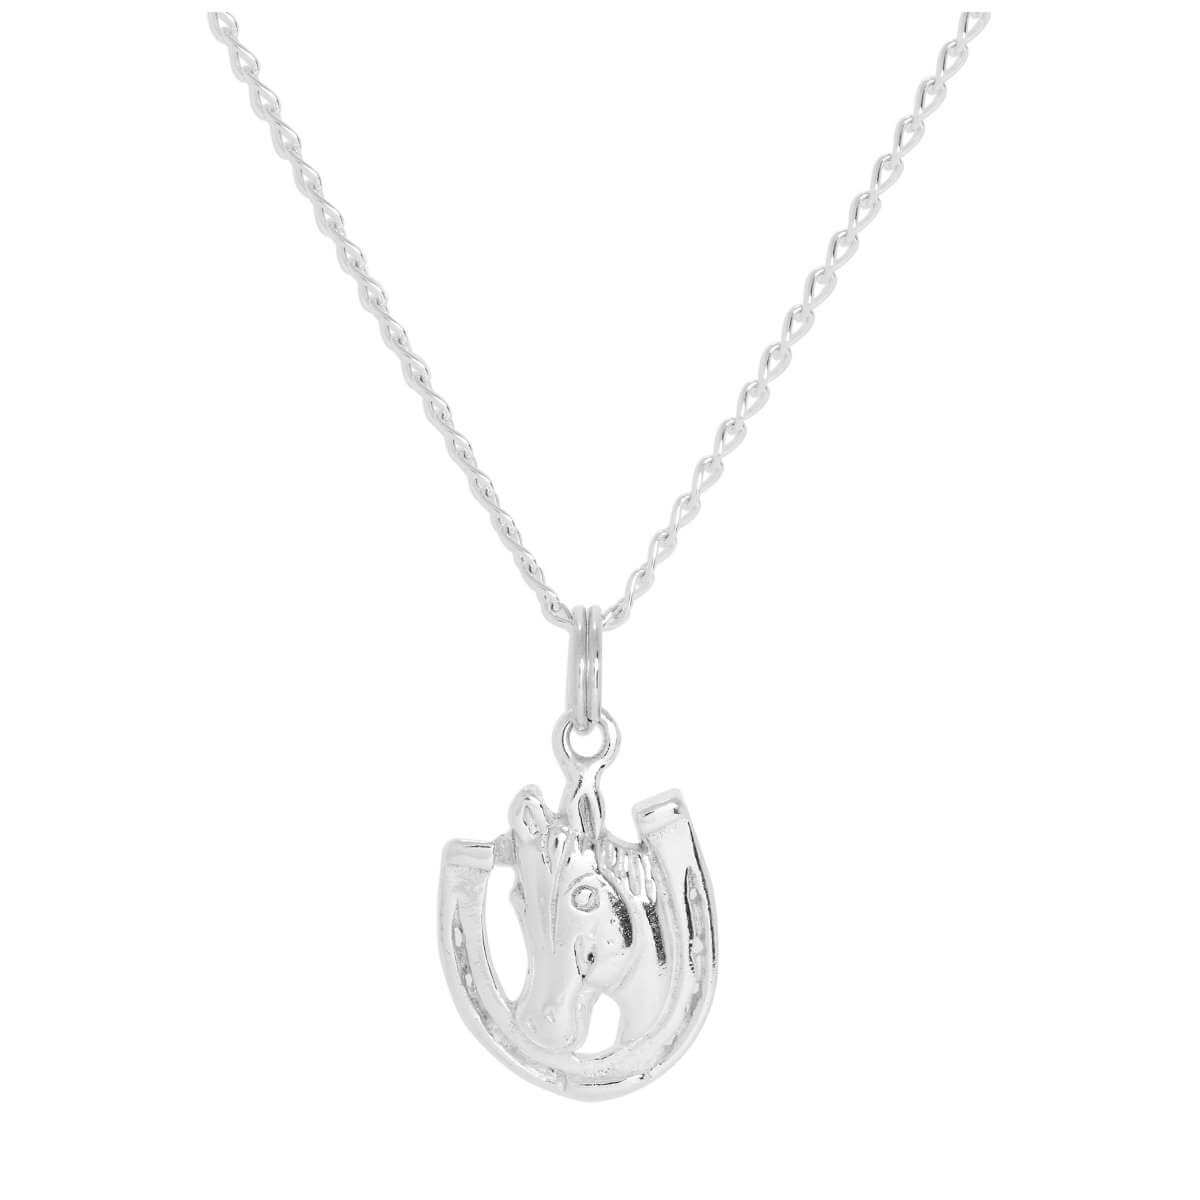 Sterling Silver Horse & Lucky Horseshoe Pendant Necklace 16 - 24 Inches